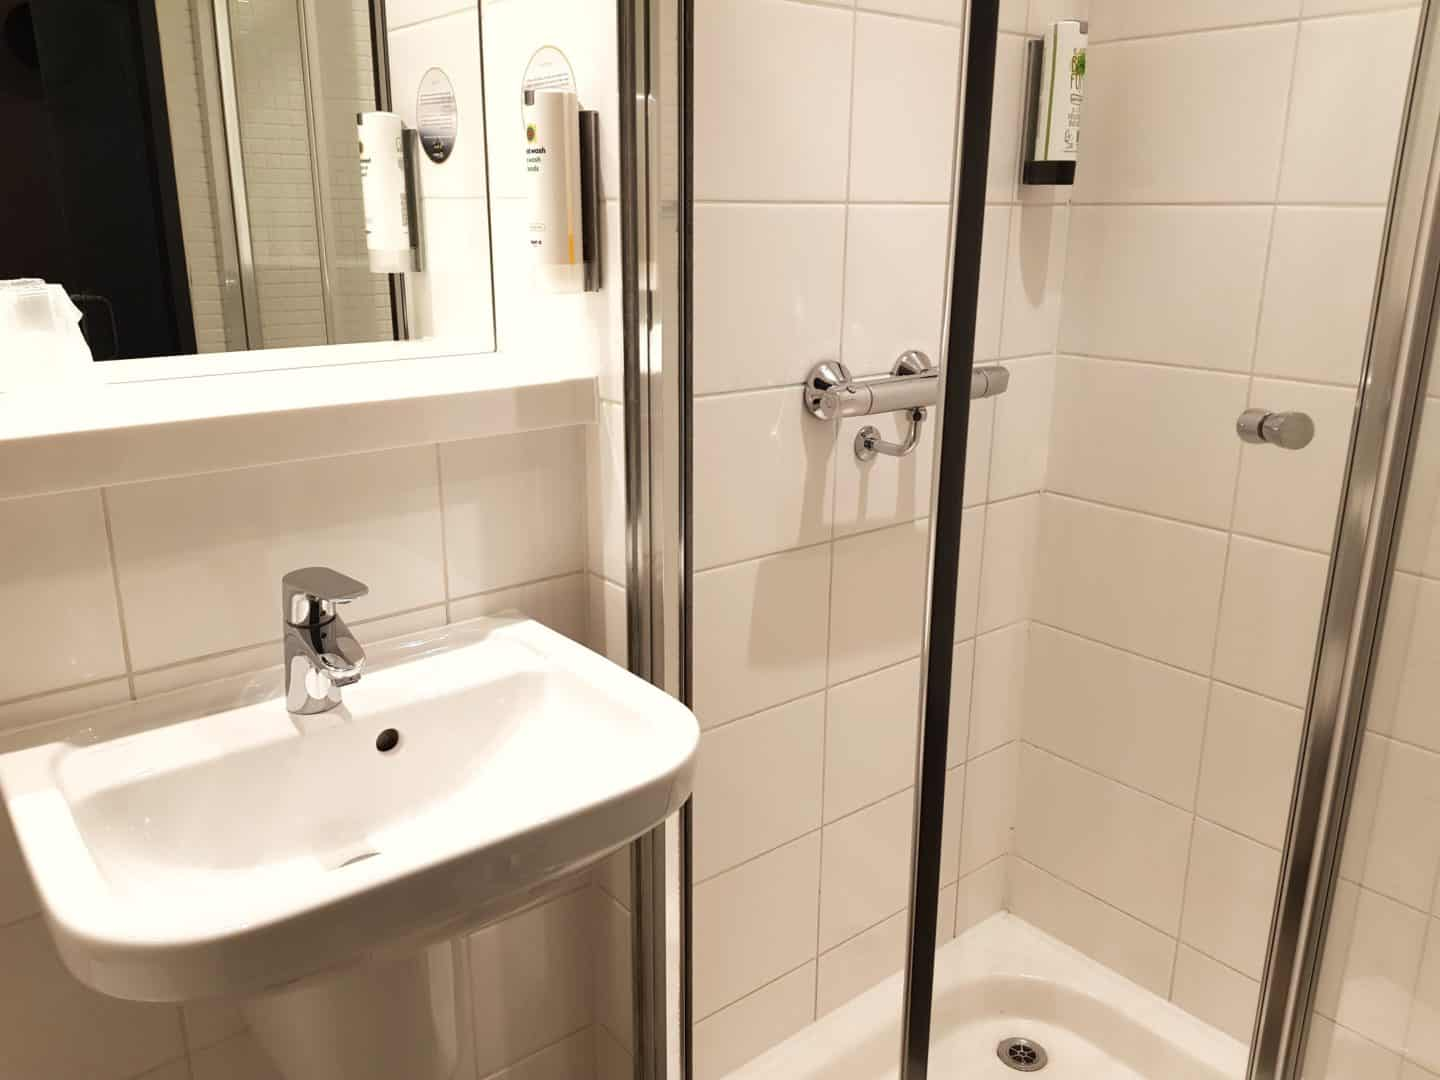 Point A Hotel sink and shower